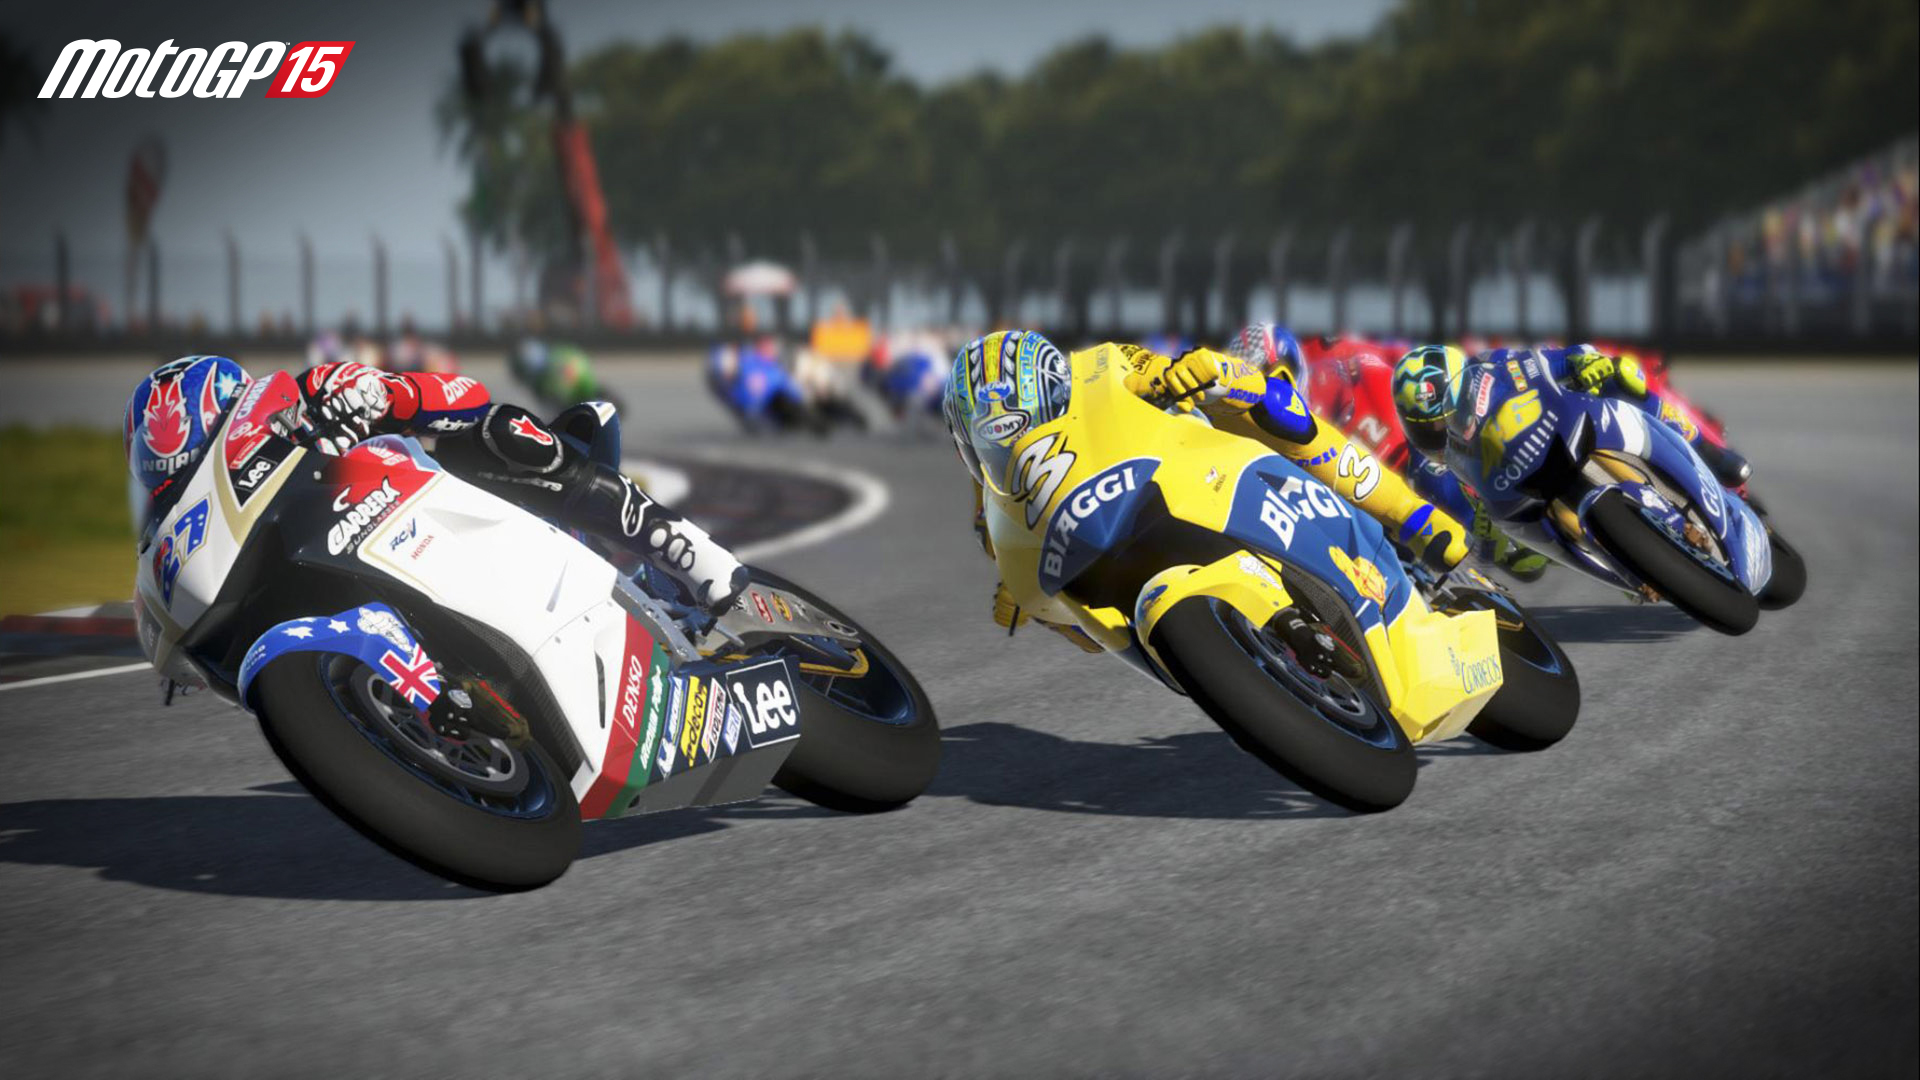 MotoGP15: Season Pass screenshot